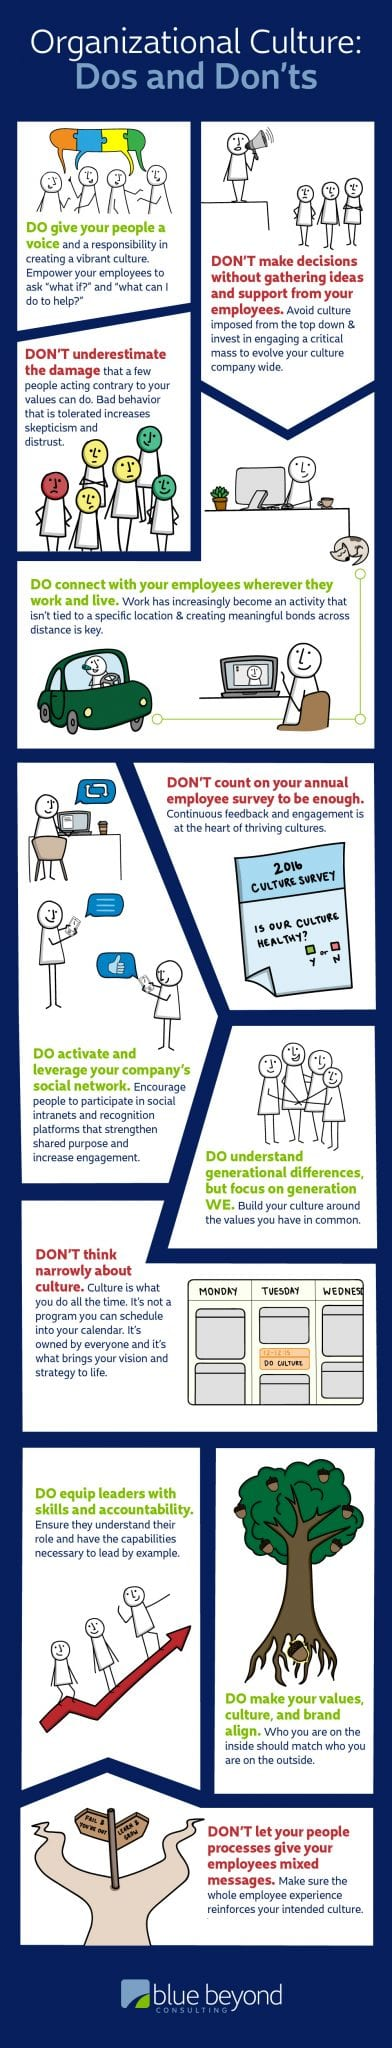 Organizational culture dos and don'ts